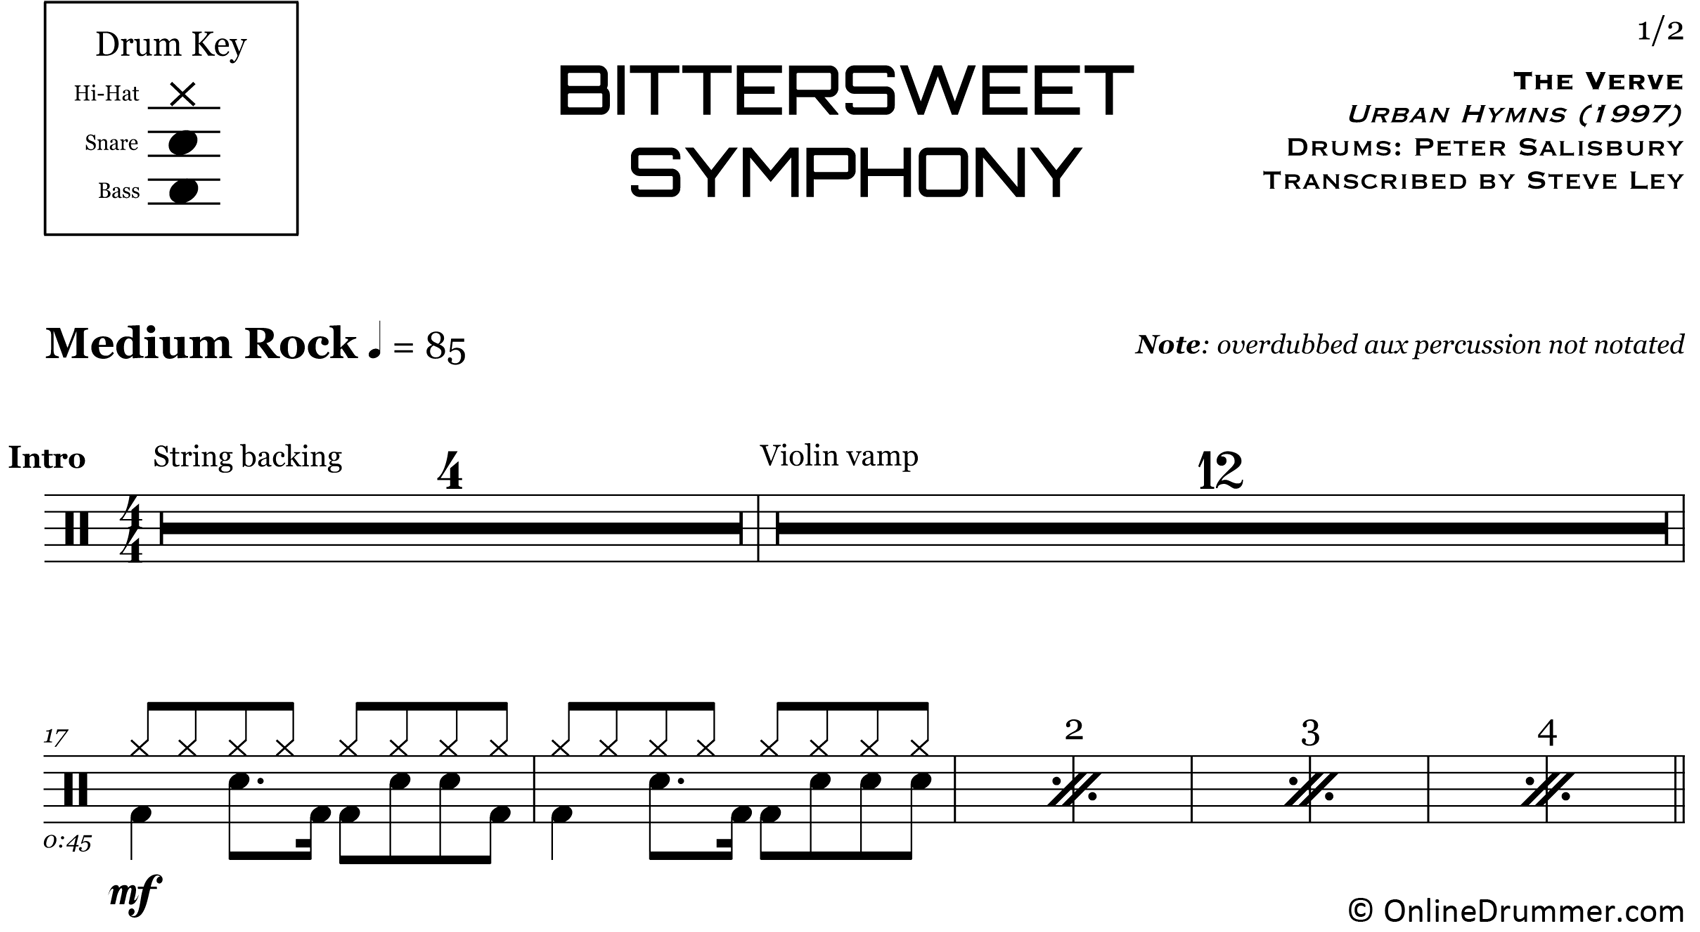 Bitter Sweet Symphony - The Verve - Drum Sheet Music